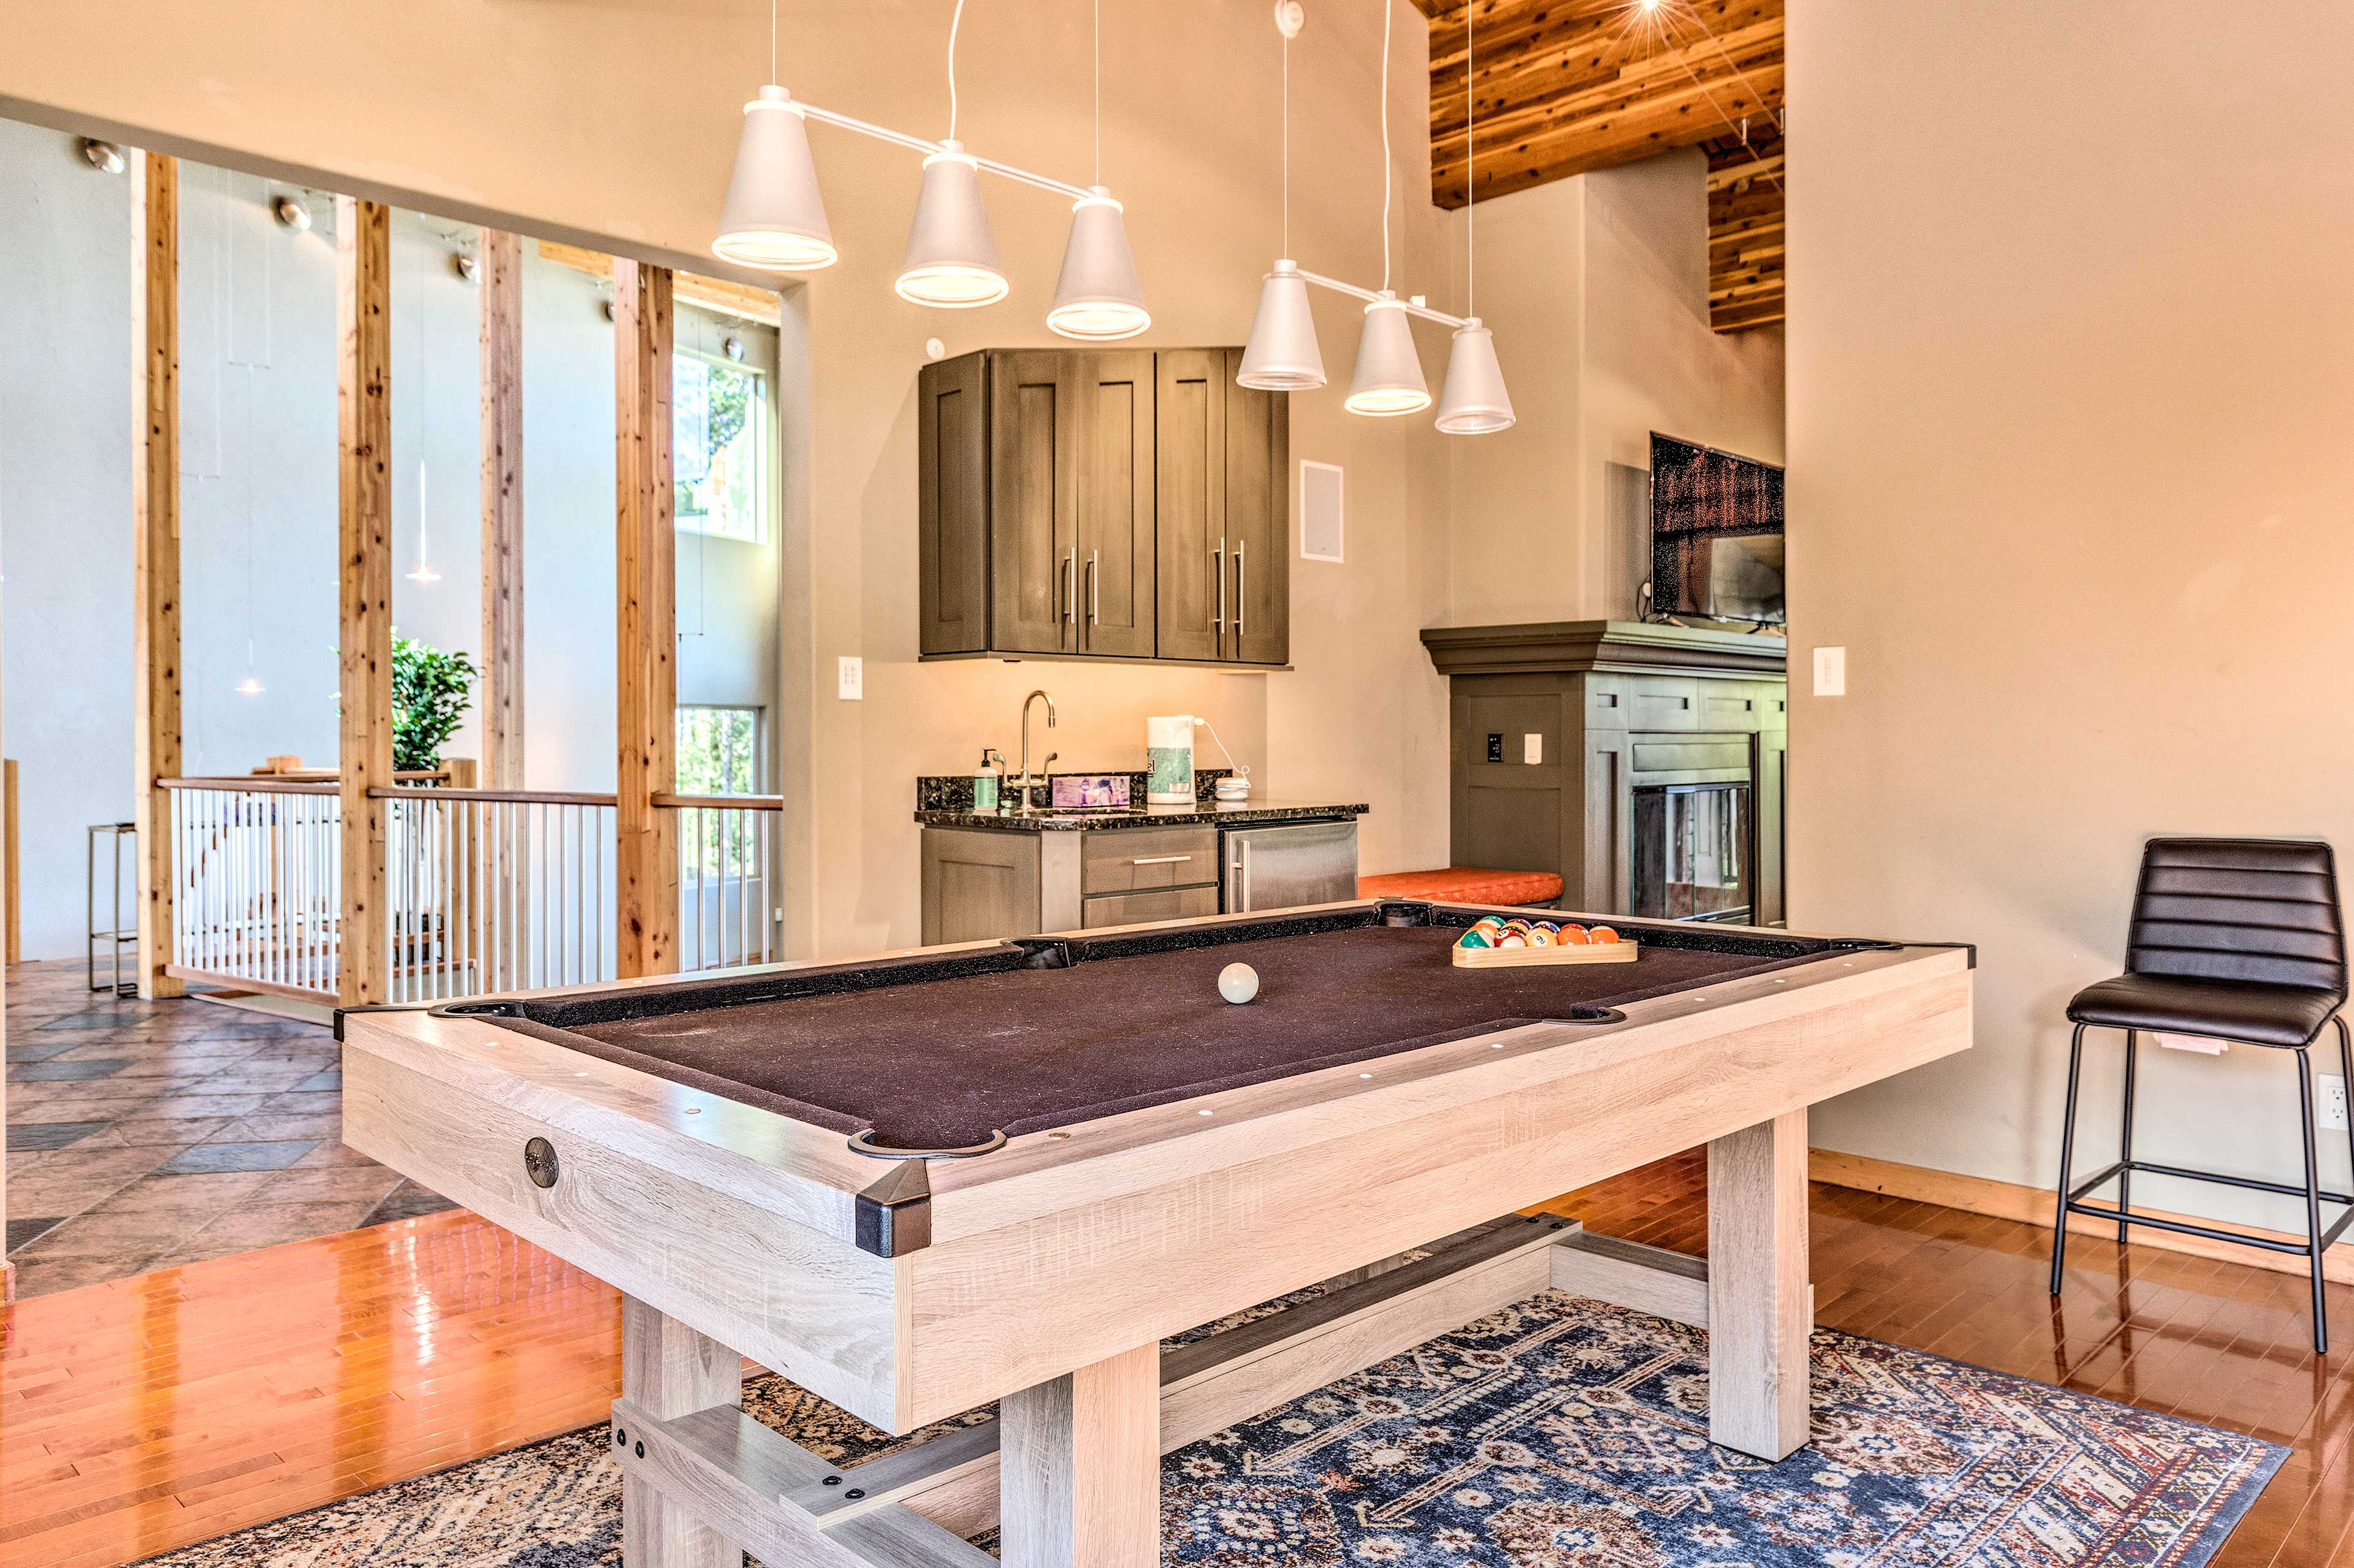 The pool table is a brand new addition to the property.